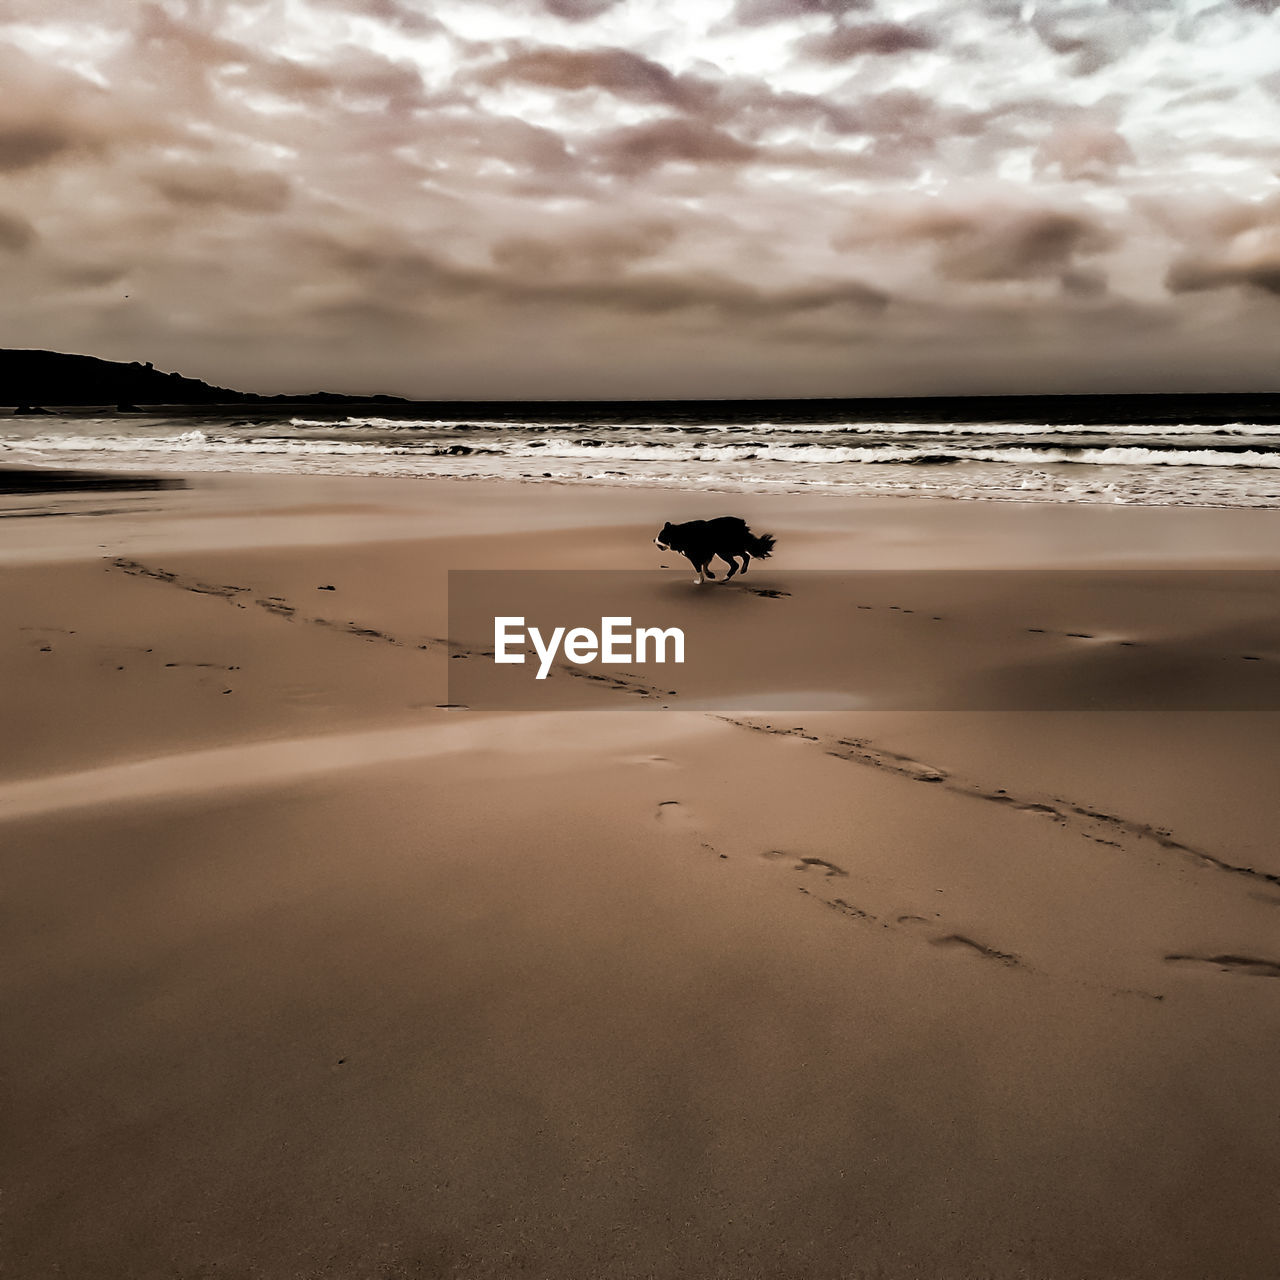 nature, sky, beach, cloud - sky, sand, beauty in nature, sea, animal themes, water, one animal, scenics, tranquility, sunset, outdoors, tranquil scene, horizon over water, animals in the wild, silhouette, day, domestic animals, mammal, no people, low tide, bird